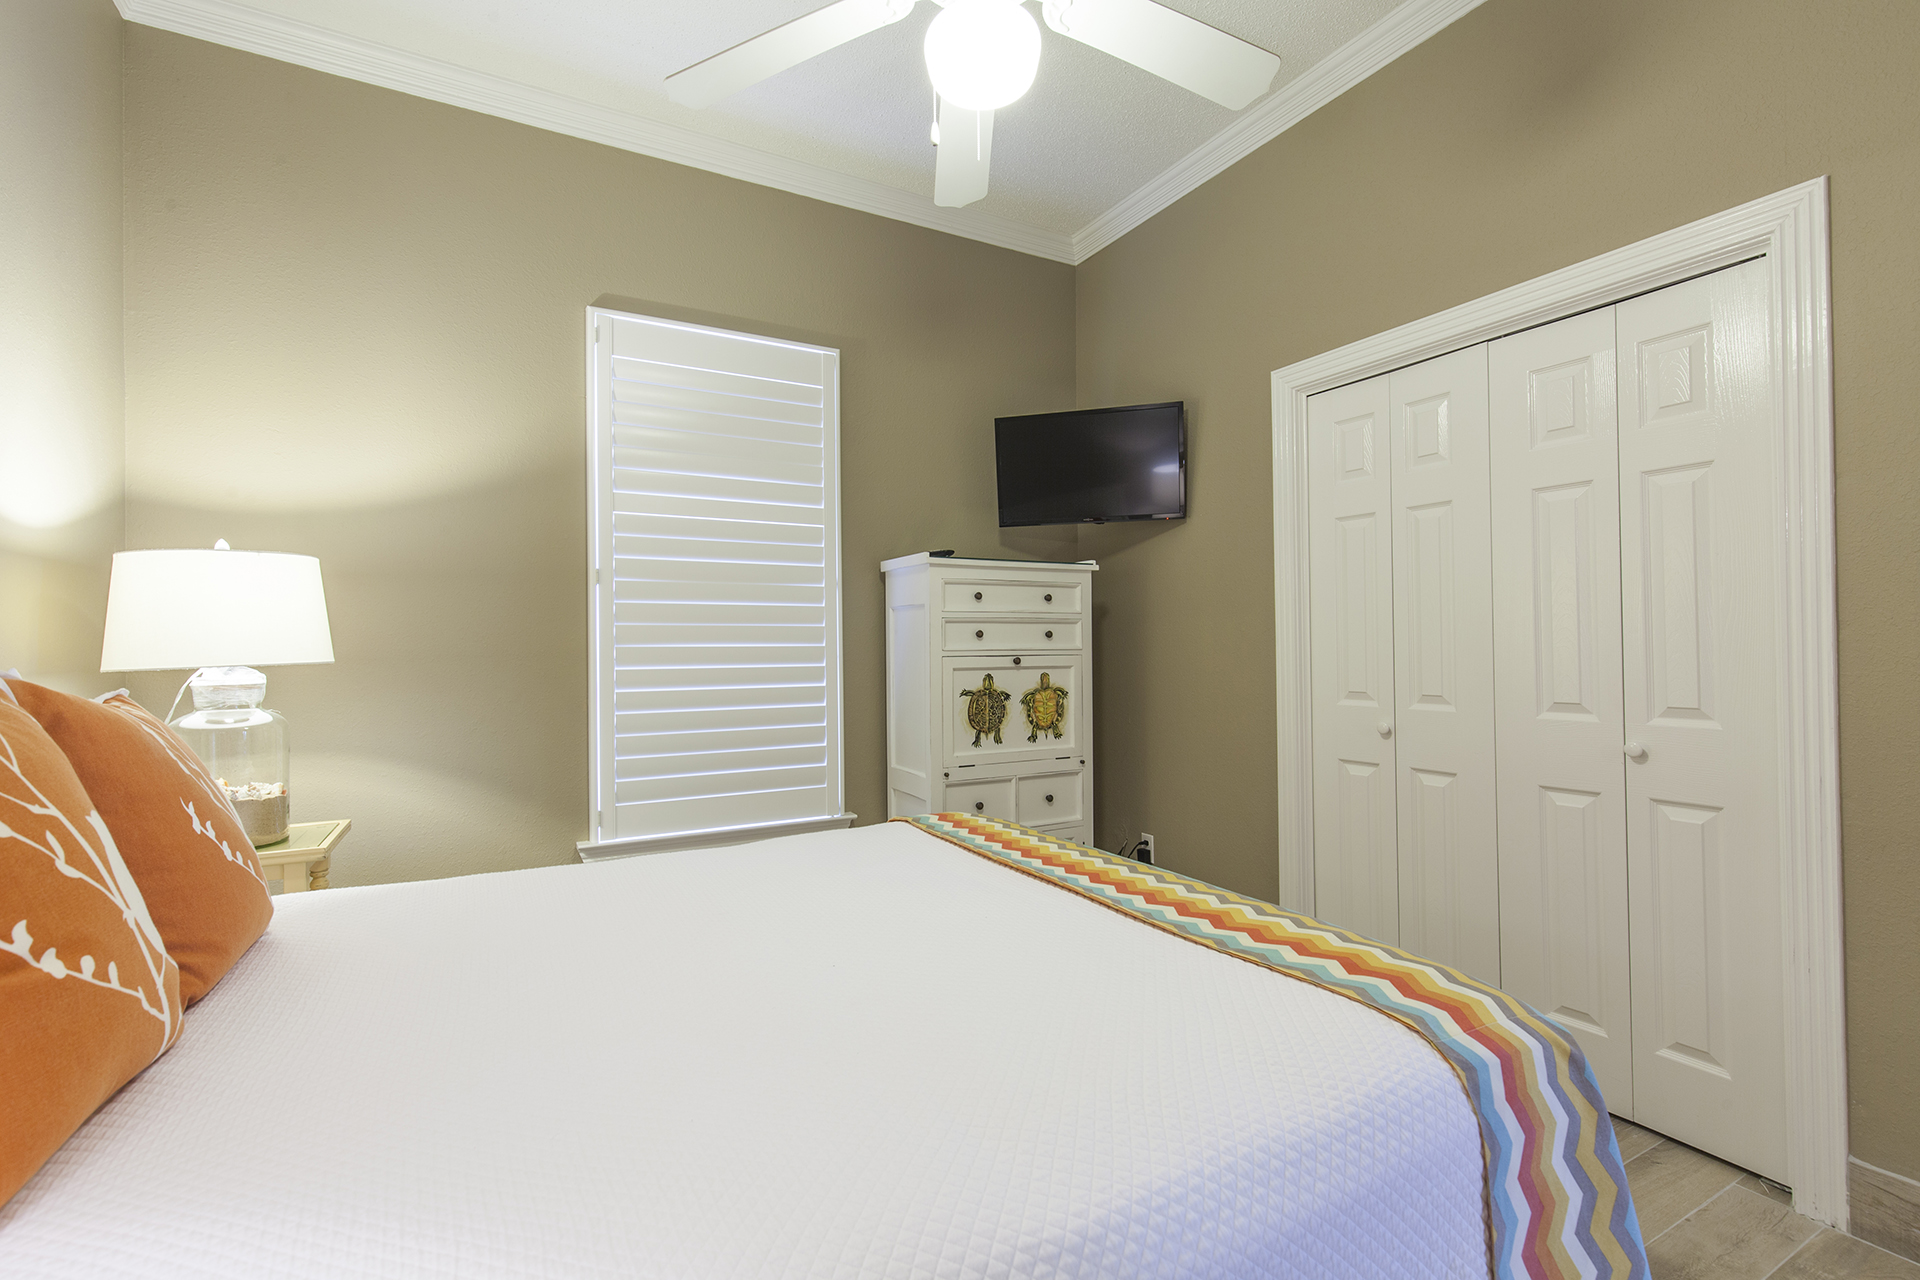 Guest bedroom with flat screen TV and additional closet storage